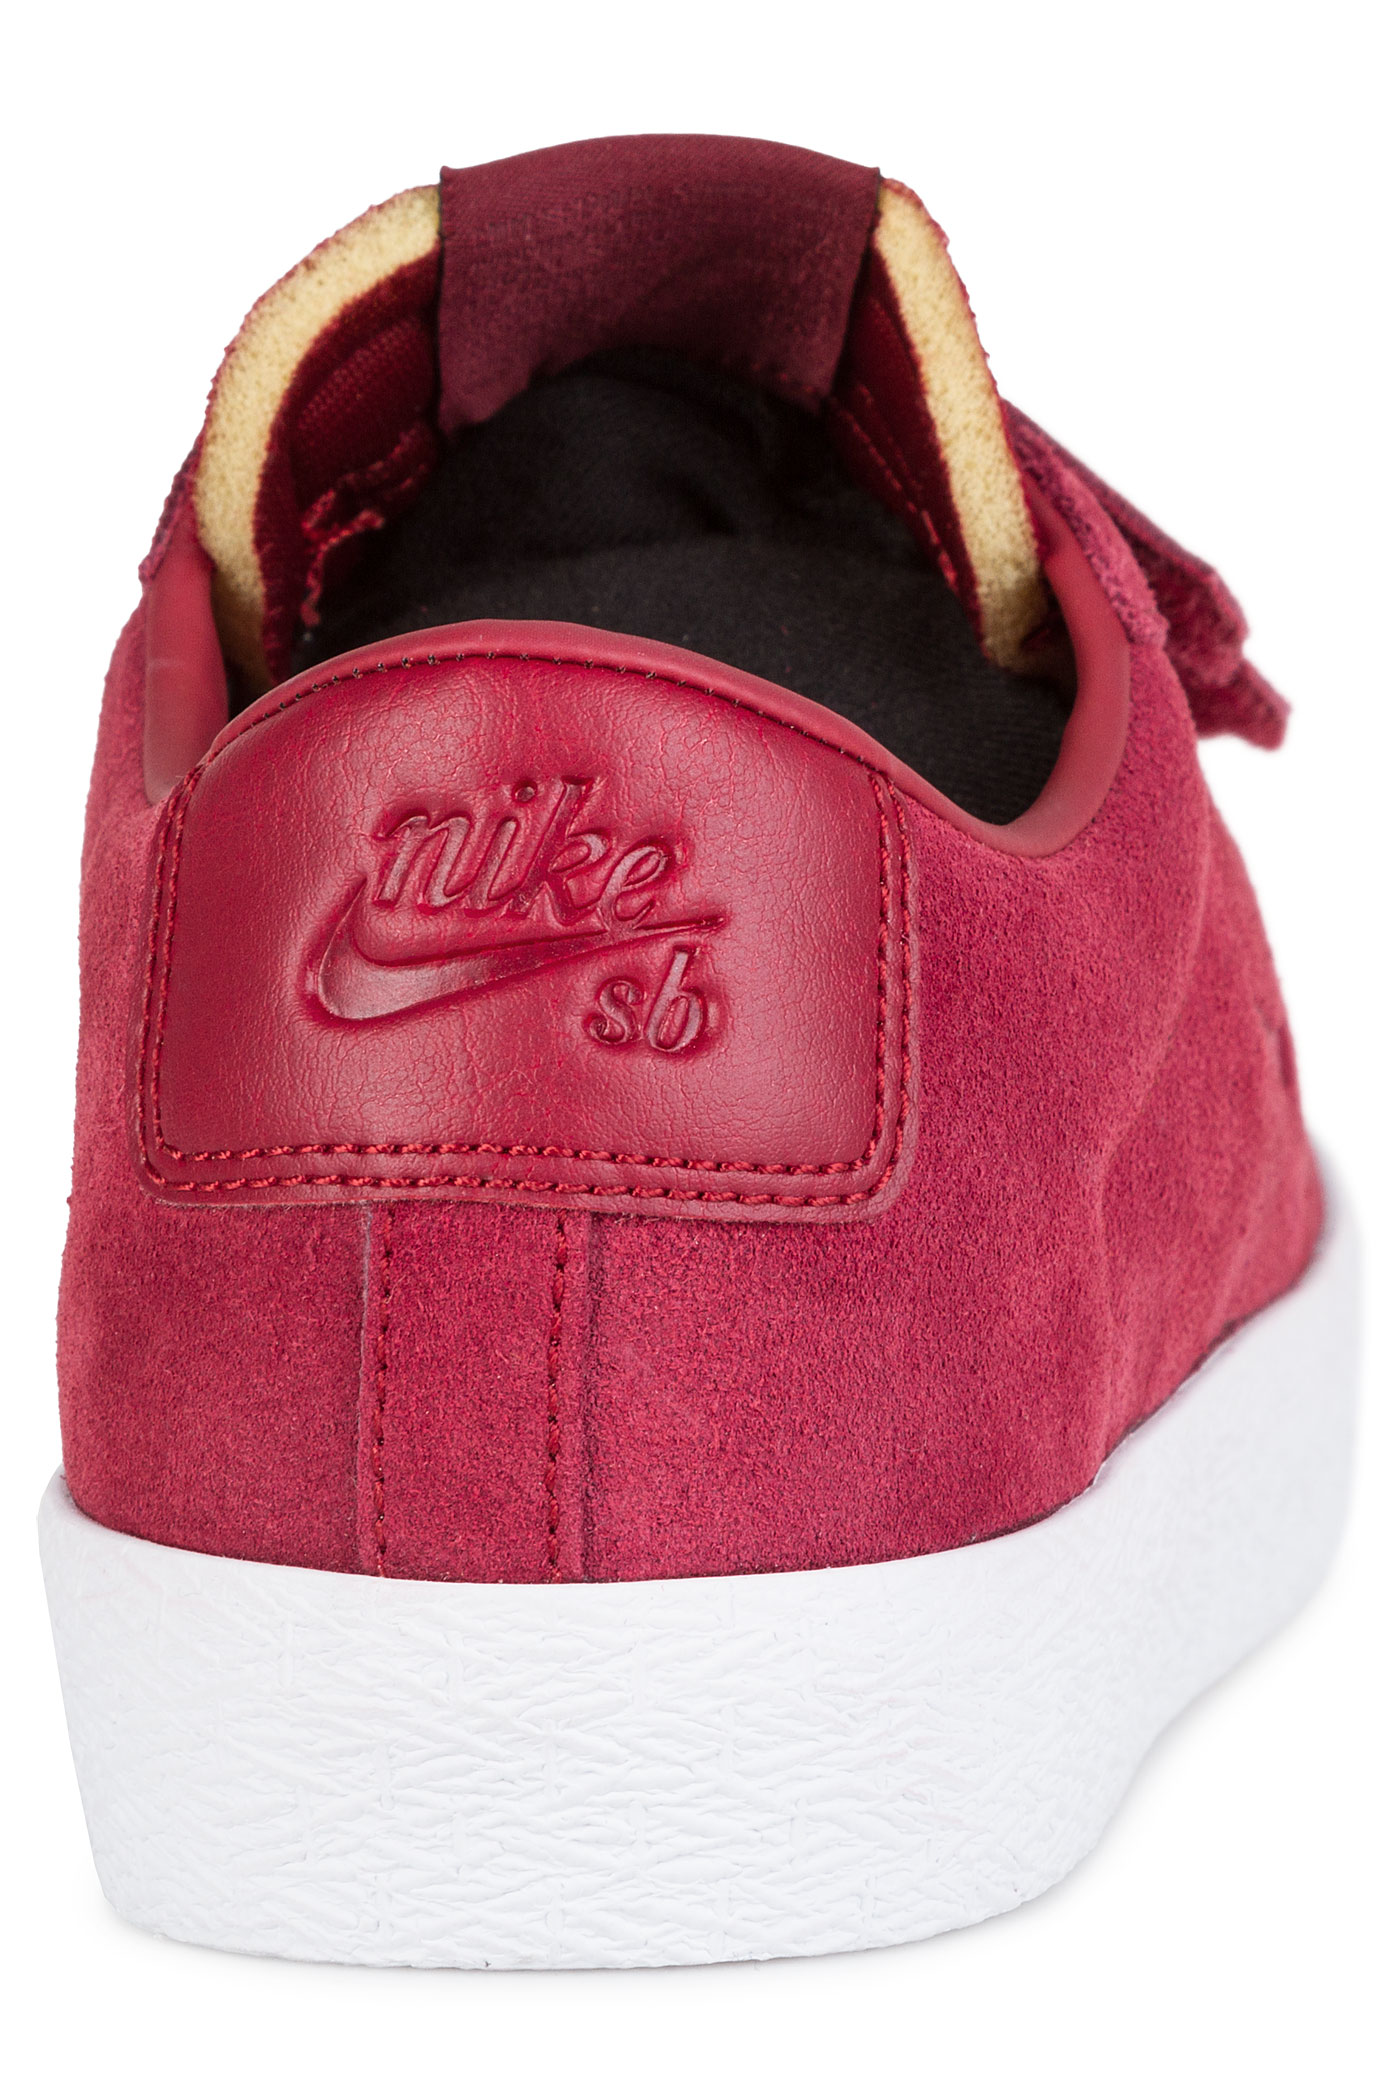 promo code 6a87e 22421 Nike SB x Numbers Zoom Blazer Low AC QS Shoes (team red ...